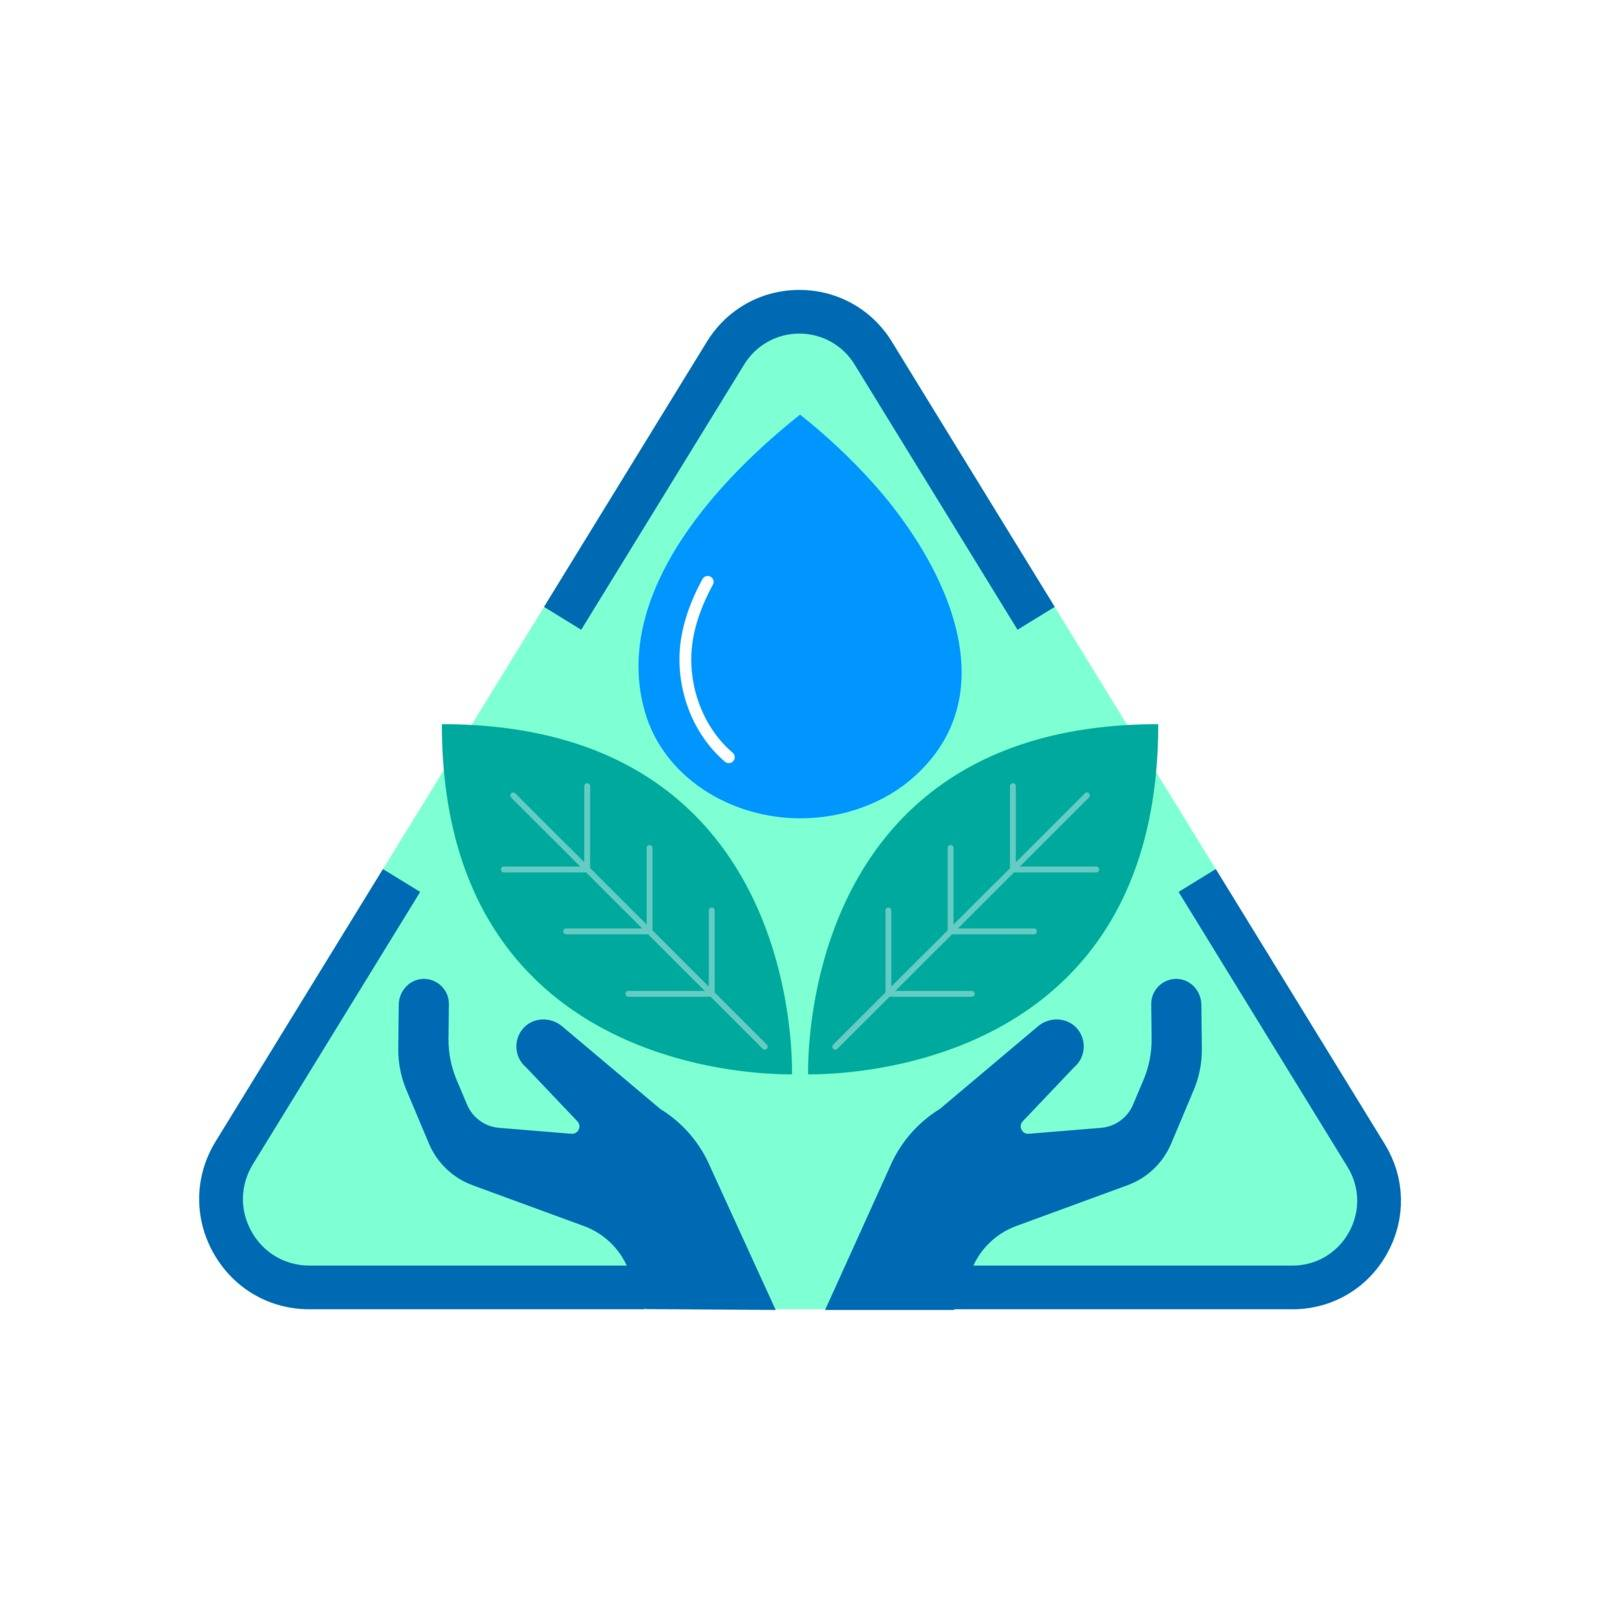 Protection hand, leaves and water drop in triangle shape. Environmental protection concept. Vector illustration outline flat design style.